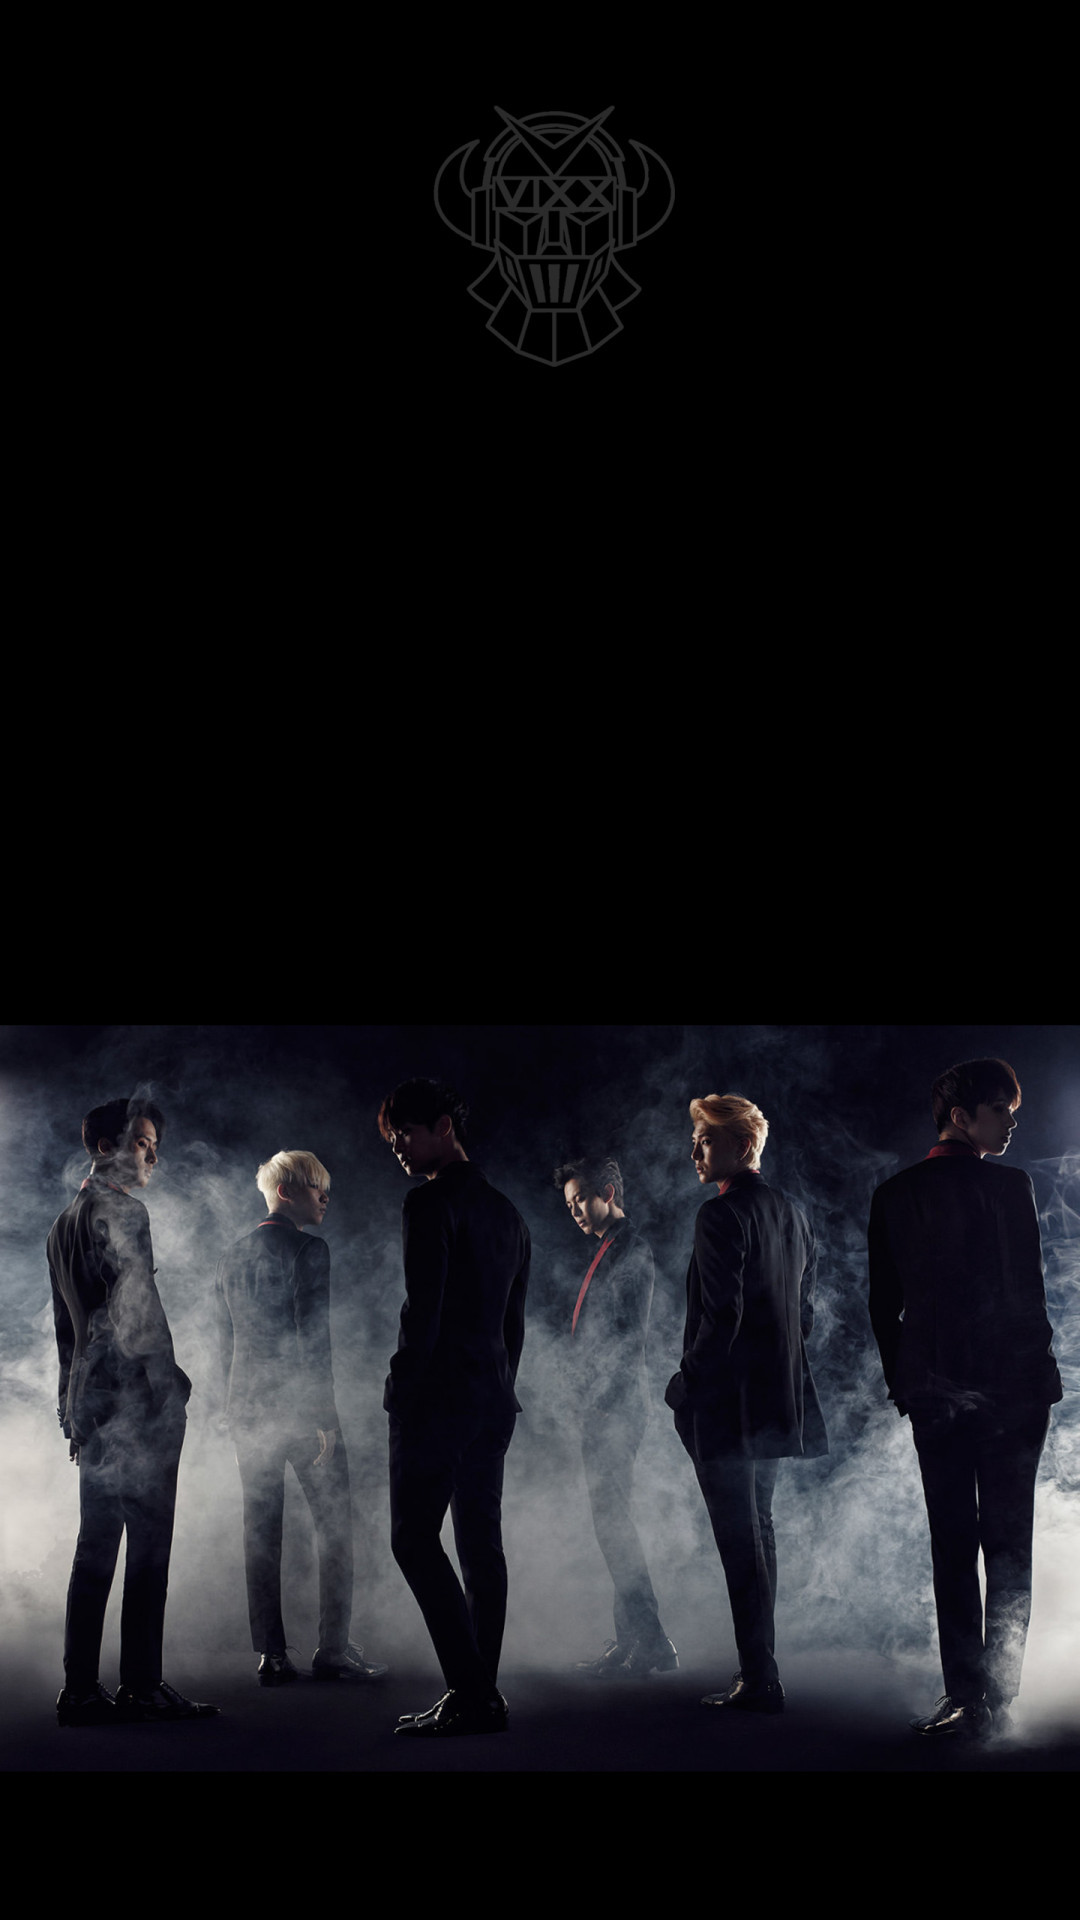 1080x1920, Slytherin Iphone Wallpaper Awesome Vixx - Monsta X Wallpaper Iphone - HD Wallpaper